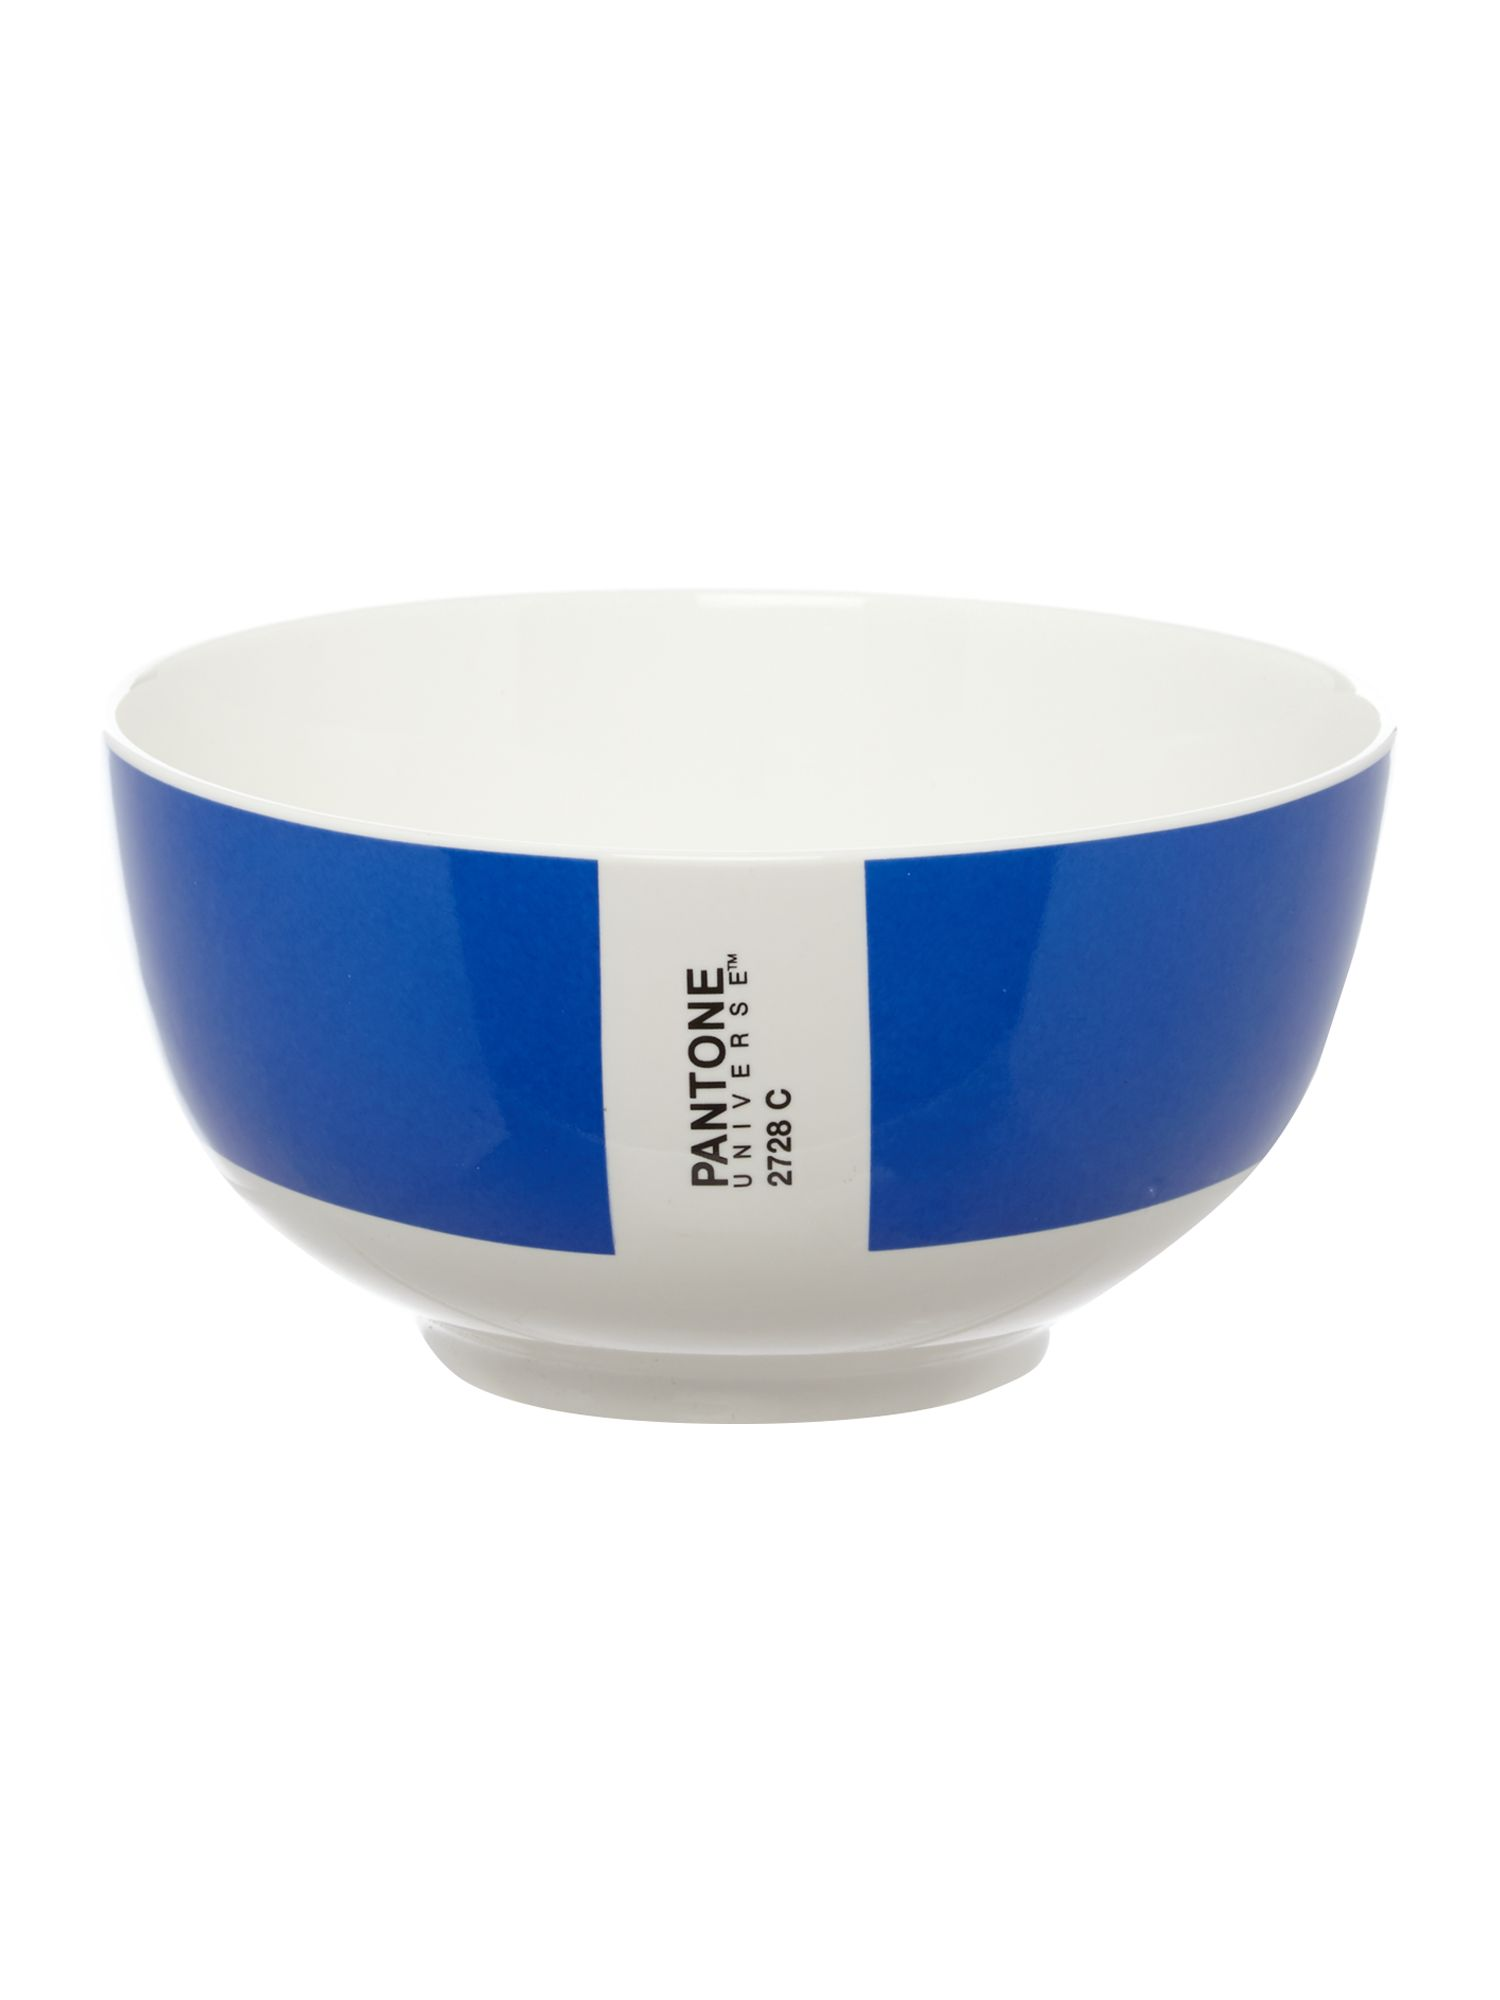 Image of Pantone Bowl luca trazzi dark blue